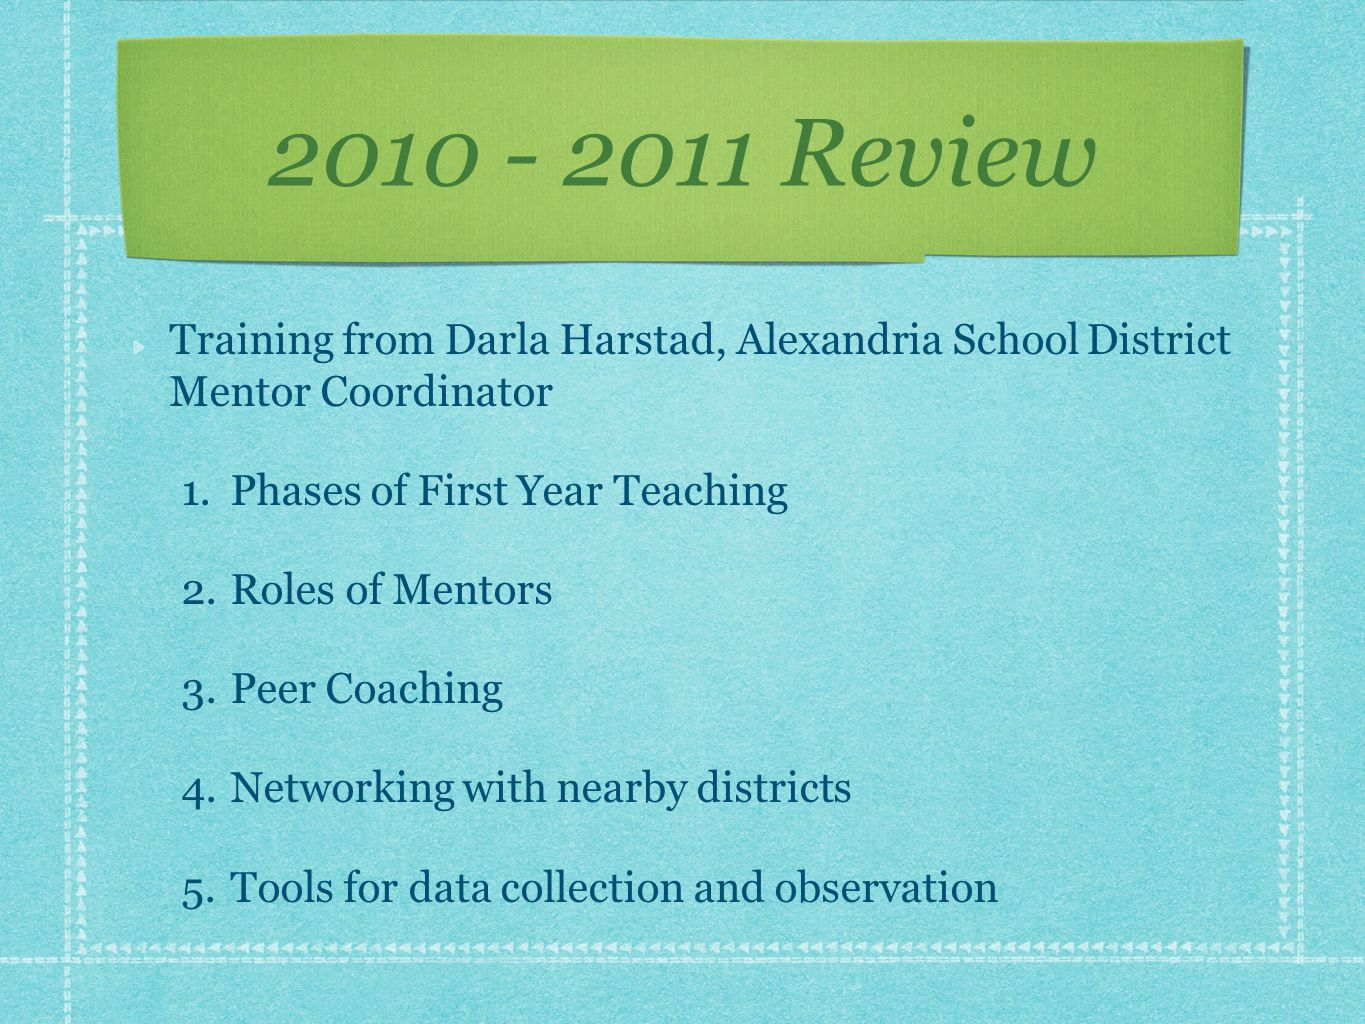 2010 - 2011 Review Training from Darla Harstad, Alexandria School District Mentor Coordinator 1.Phases of First Year Teaching 2.Roles of Mentors 3.Pee